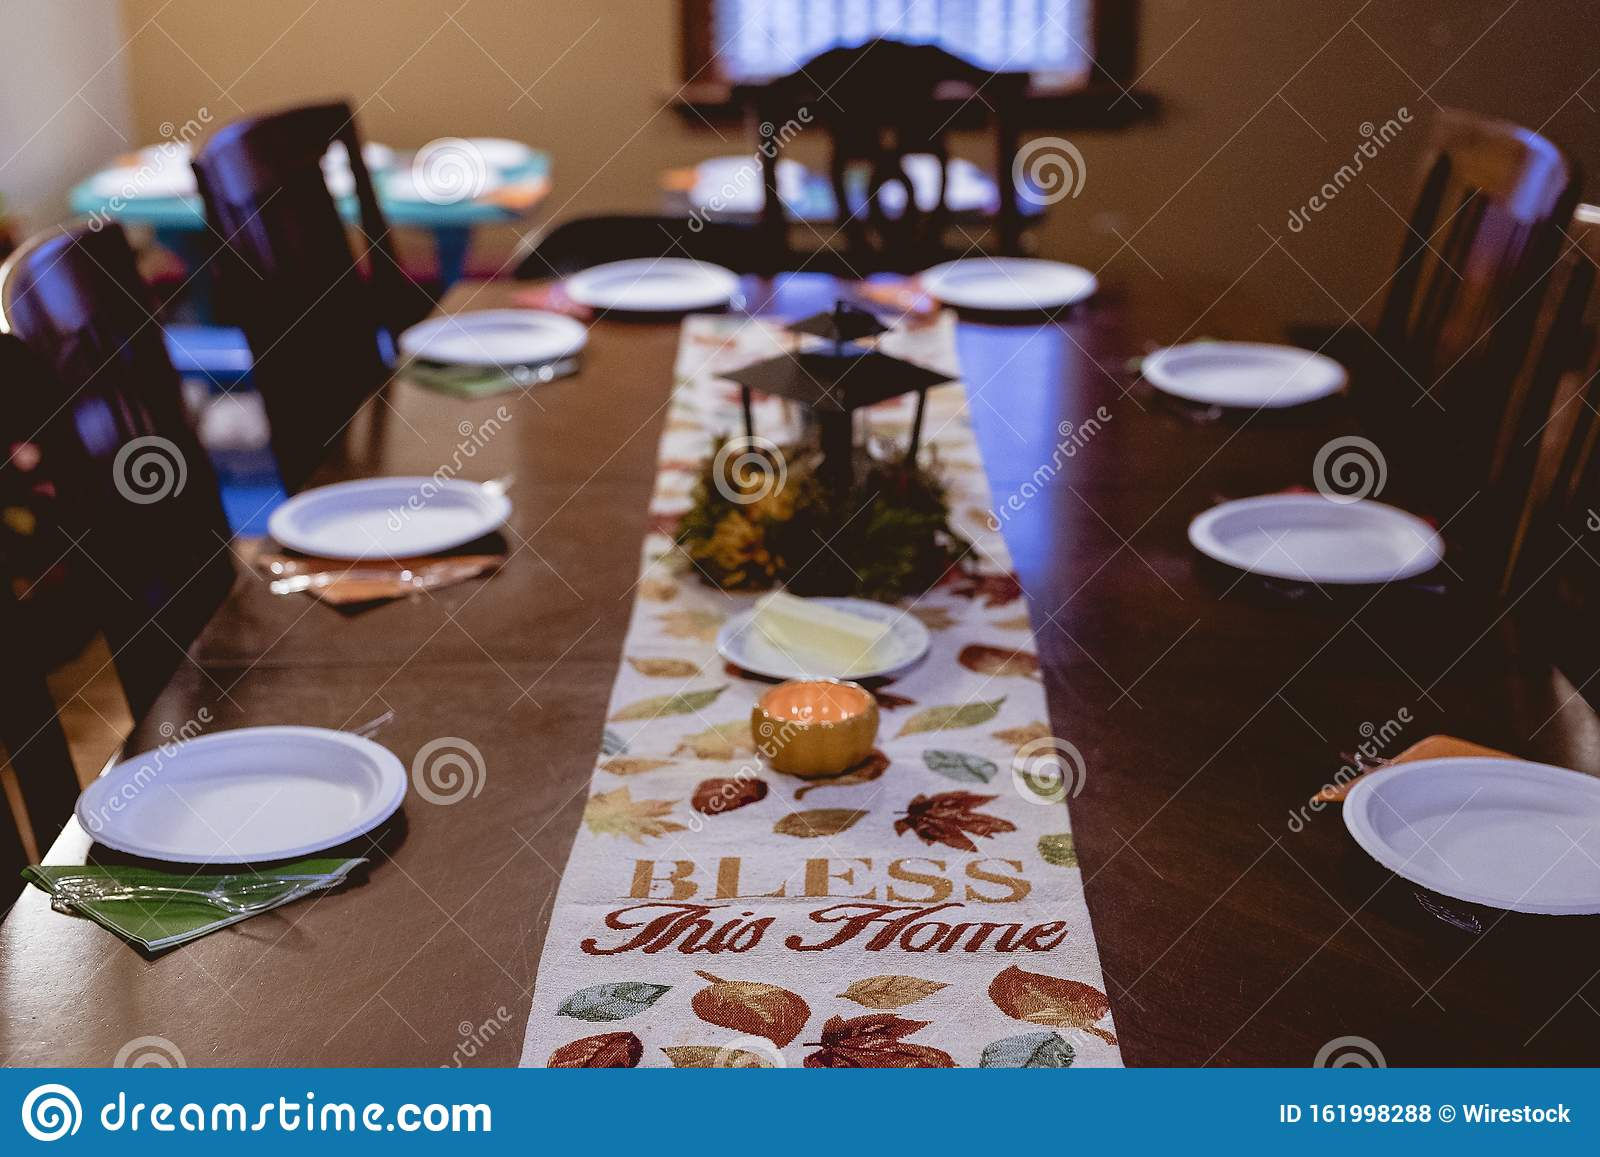 High Angle Shot Of A Table Runner On A Dinner Table With A Blurred Background Stock Photo Image Of Healthy Homemade 161998288